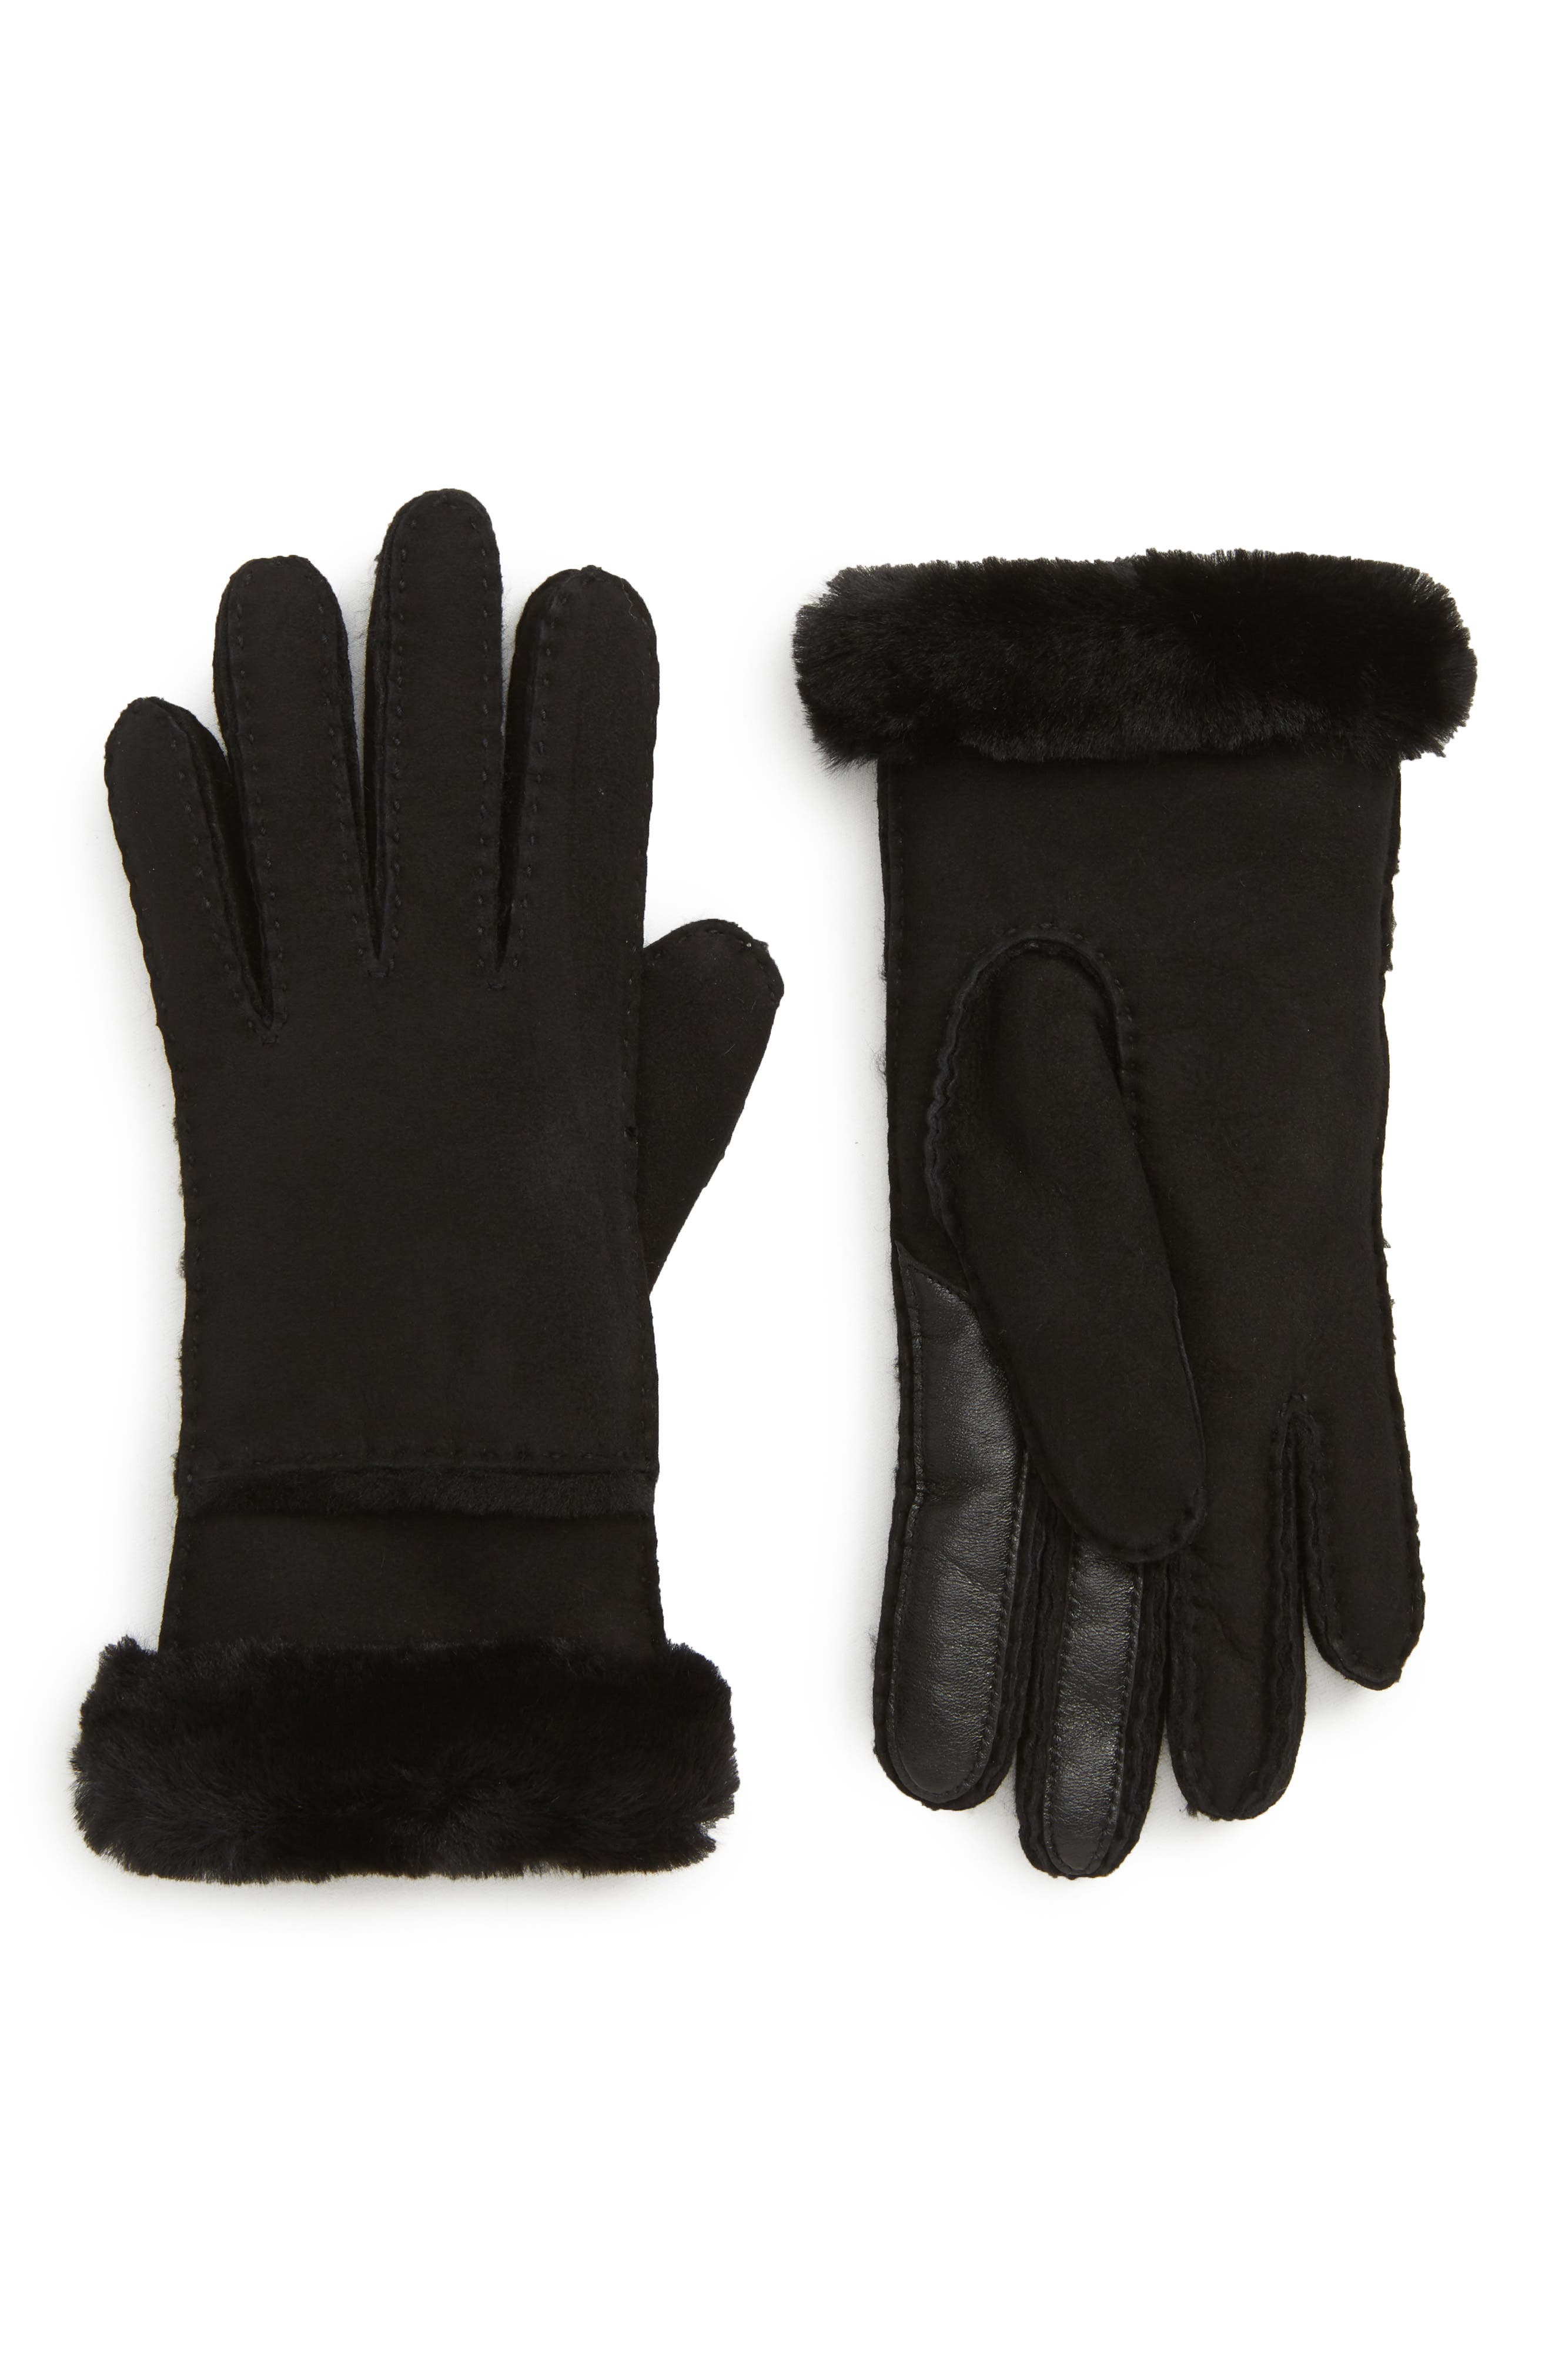 UGG<sup>®</sup> Seamed Touchscreen Compatible Gloves with Genuine Shearling Trim,                             Main thumbnail 1, color,                             BLACK